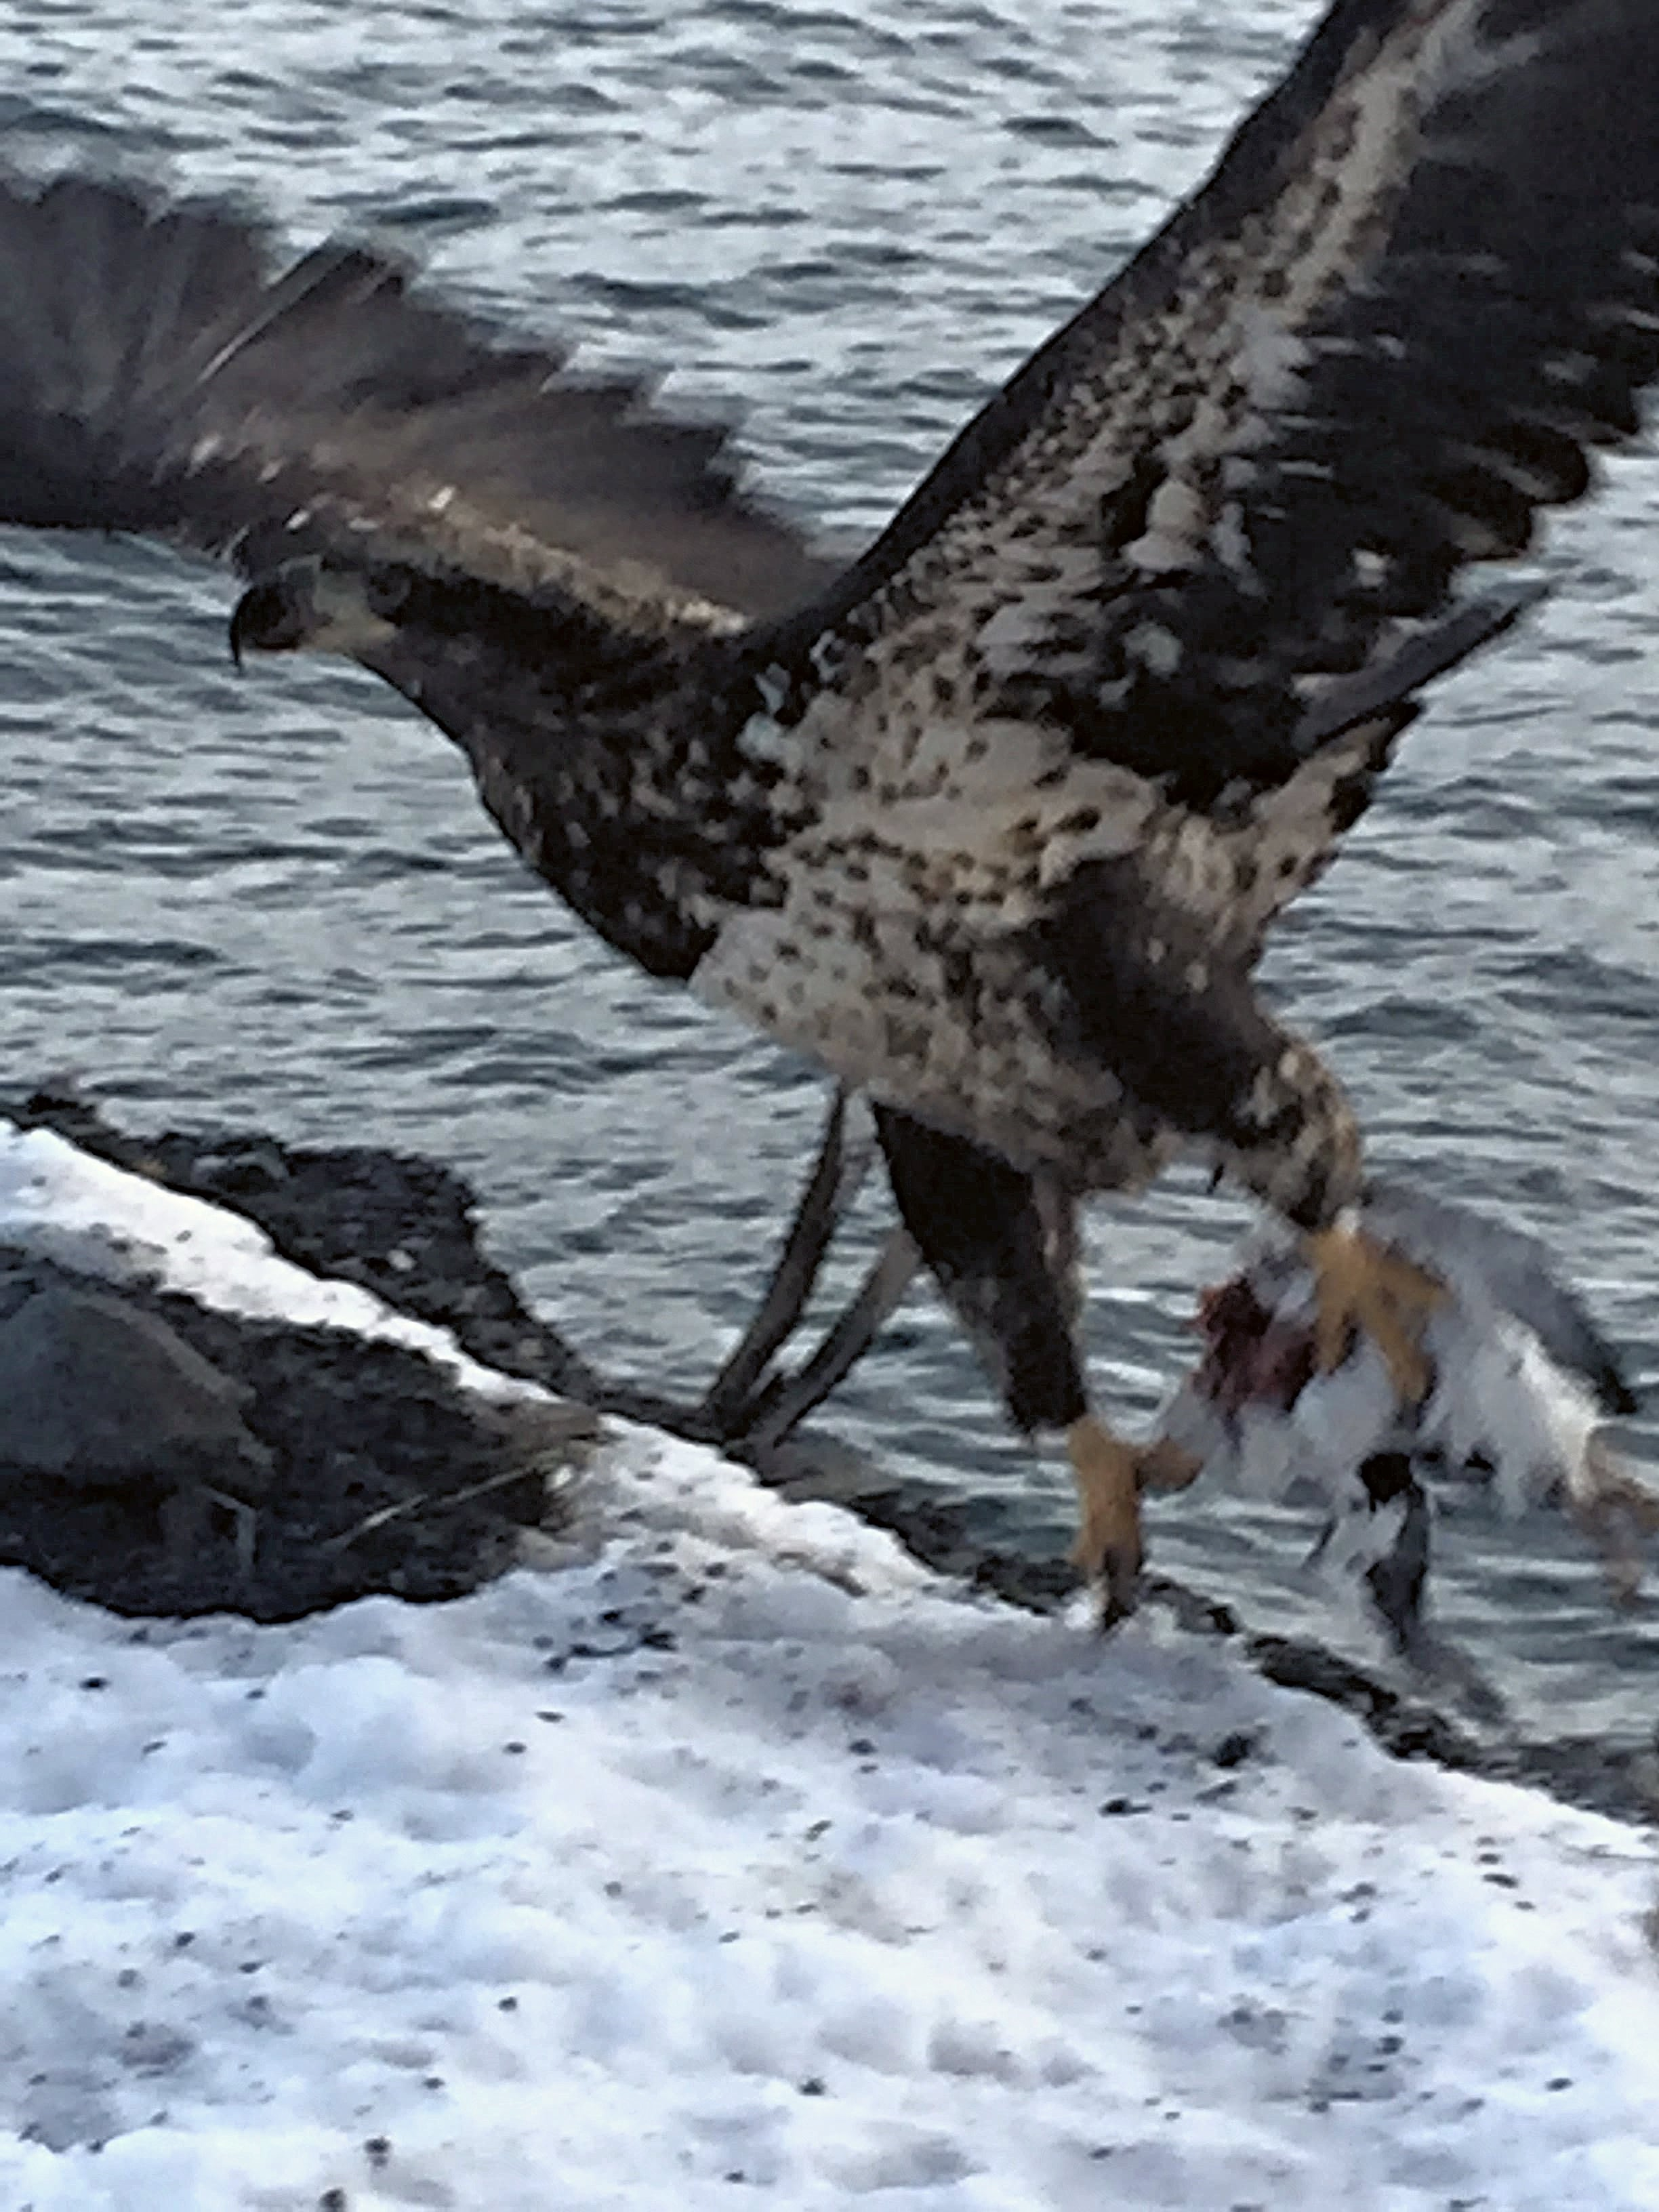 Juvenile Bald Eagle (and an unfortunate Common Murre)